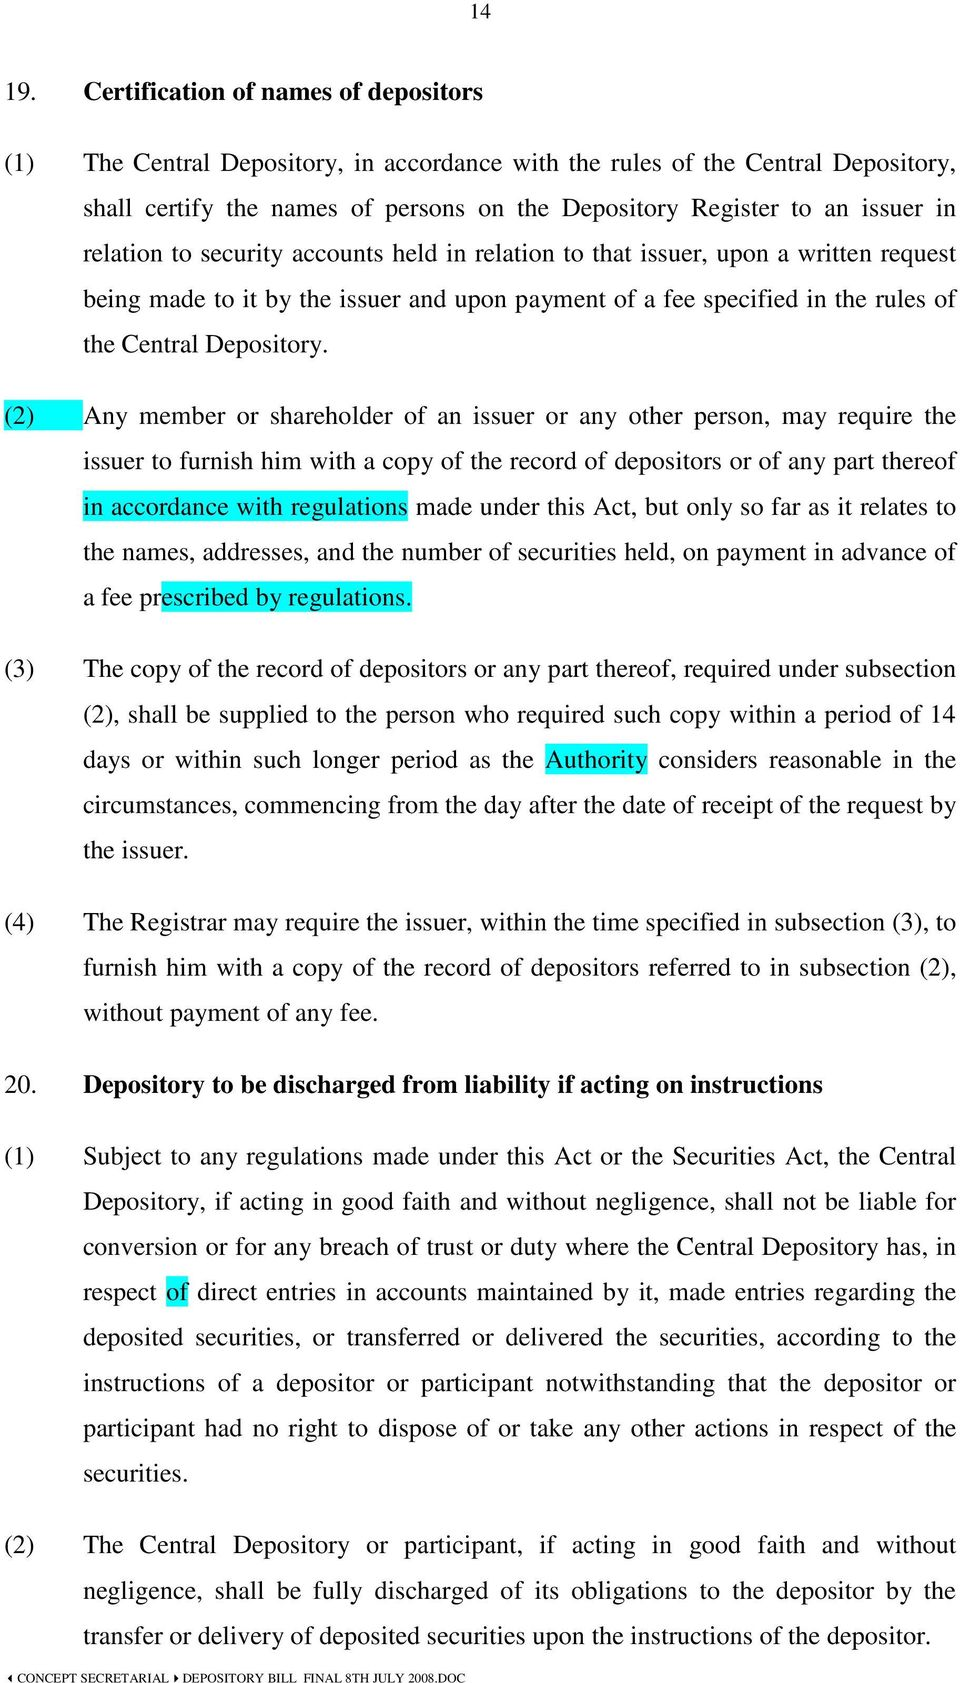 relation to security accounts held in relation to that issuer, upon a written request being made to it by the issuer and upon payment of a fee specified in the rules of the Central Depository.